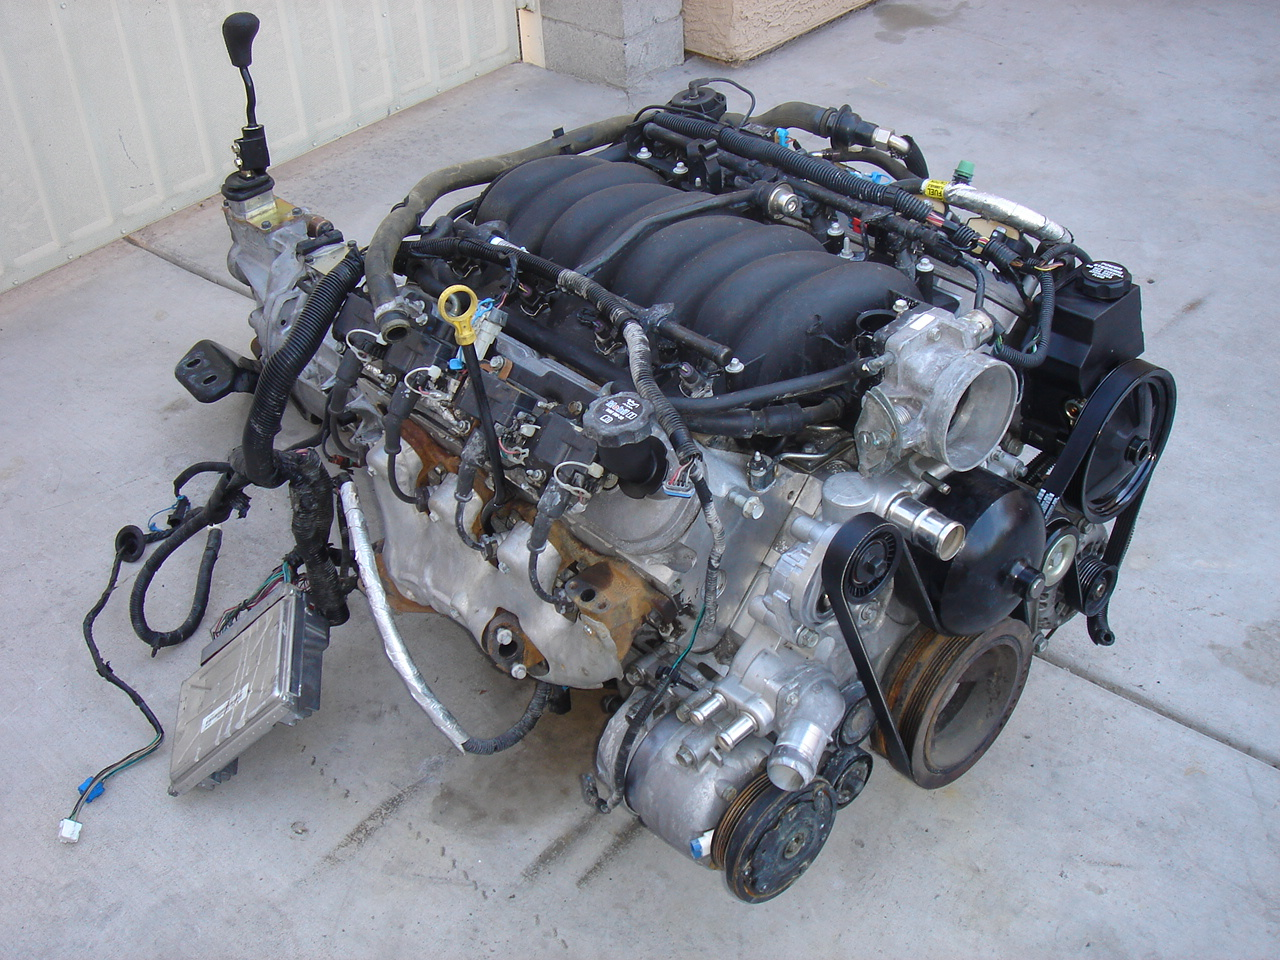 53 Vortec Crate Engine For Sale The Gmc Car 5 3 With Wiring Harness Free Gen Iv Series Source Ls1 Ls6 Intake Ls Cam Parts Sandrails